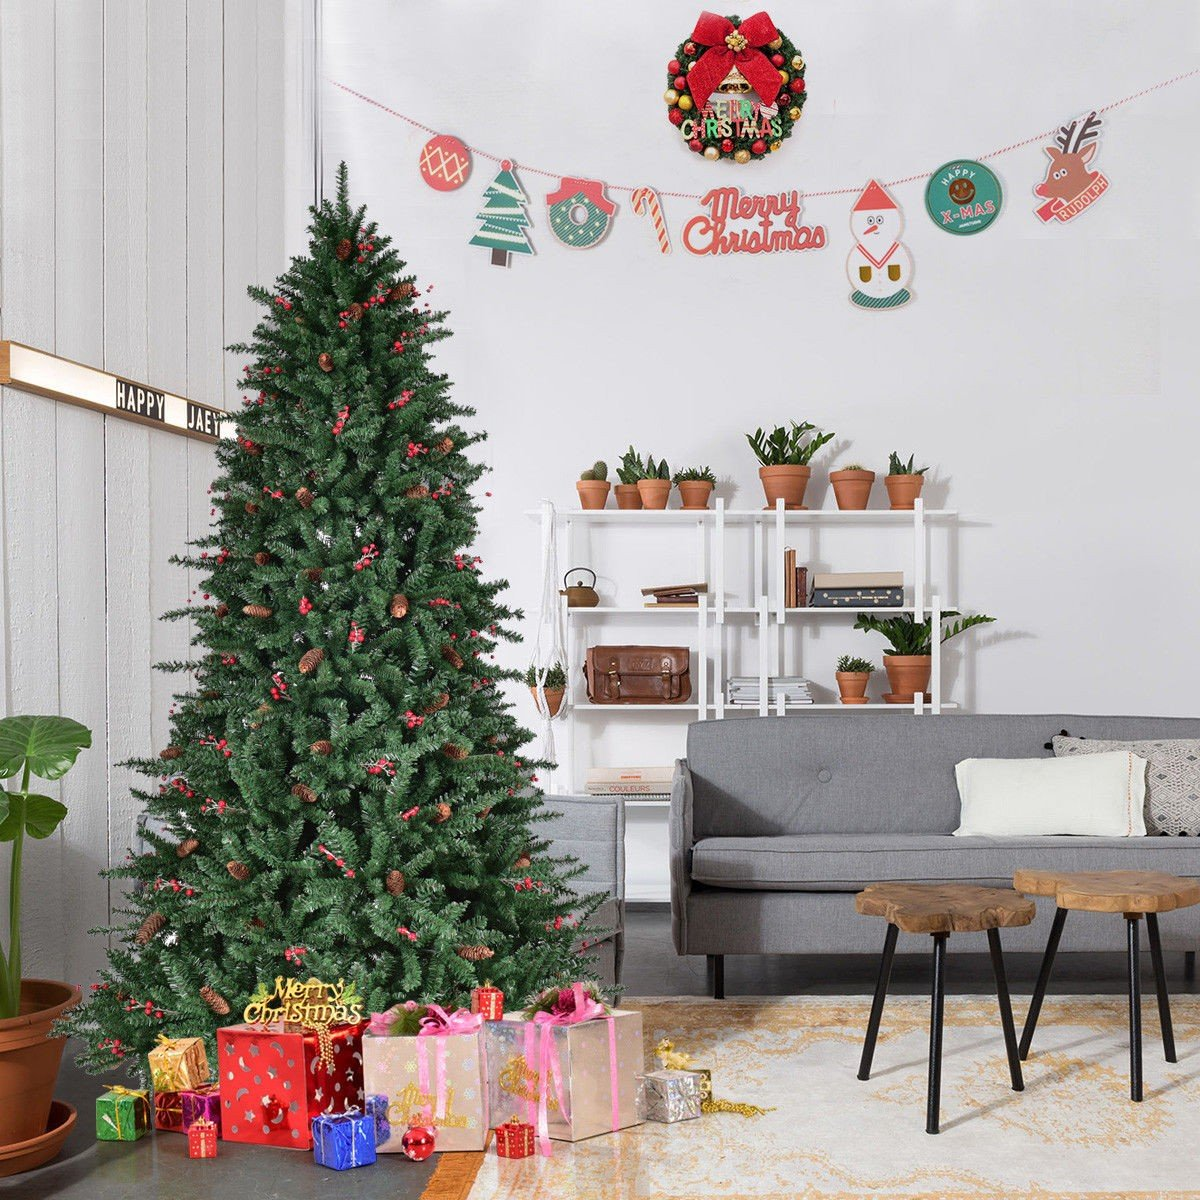 6 7 8 Artificial Pvc Christmas Tree W Pine Cones Red Berries Fiber Optic Christmas Tree Pencil Christmas Tree Unlit Christmas Trees